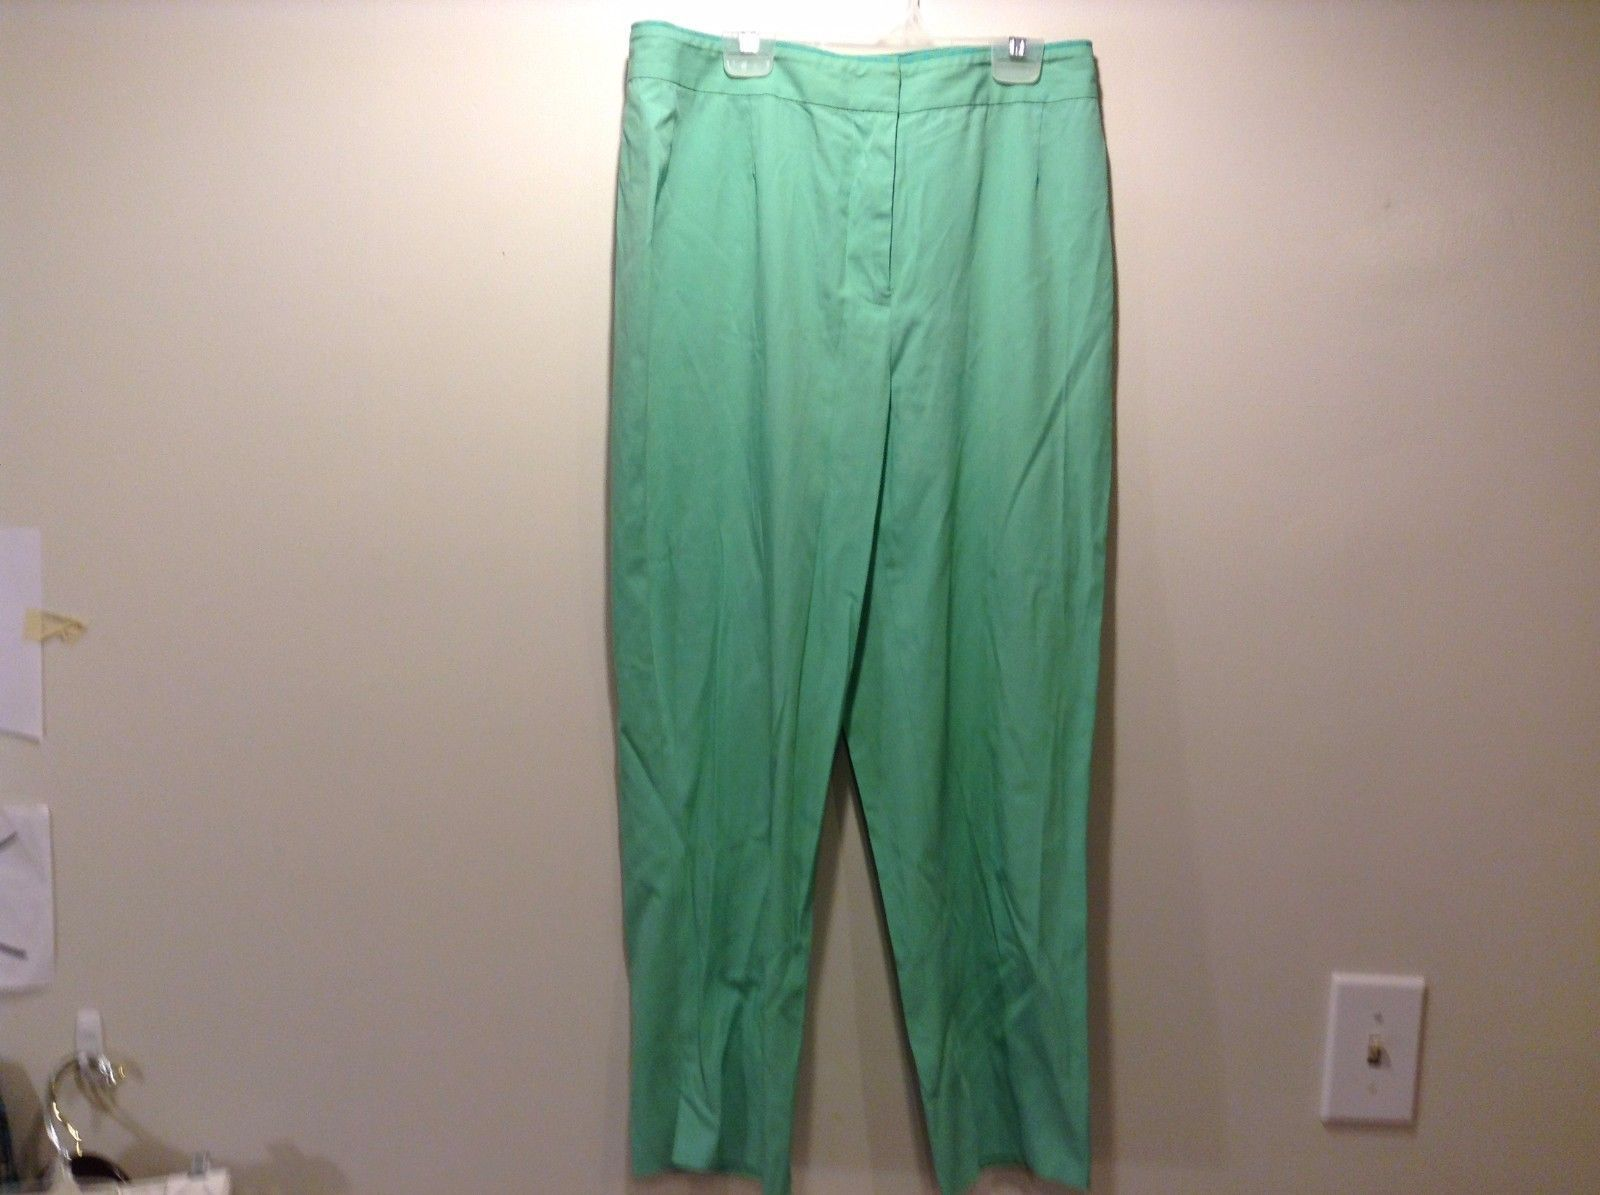 Used Good Condition Seafoam Green Slacks TSE Brand Size 8 Cotton Blend